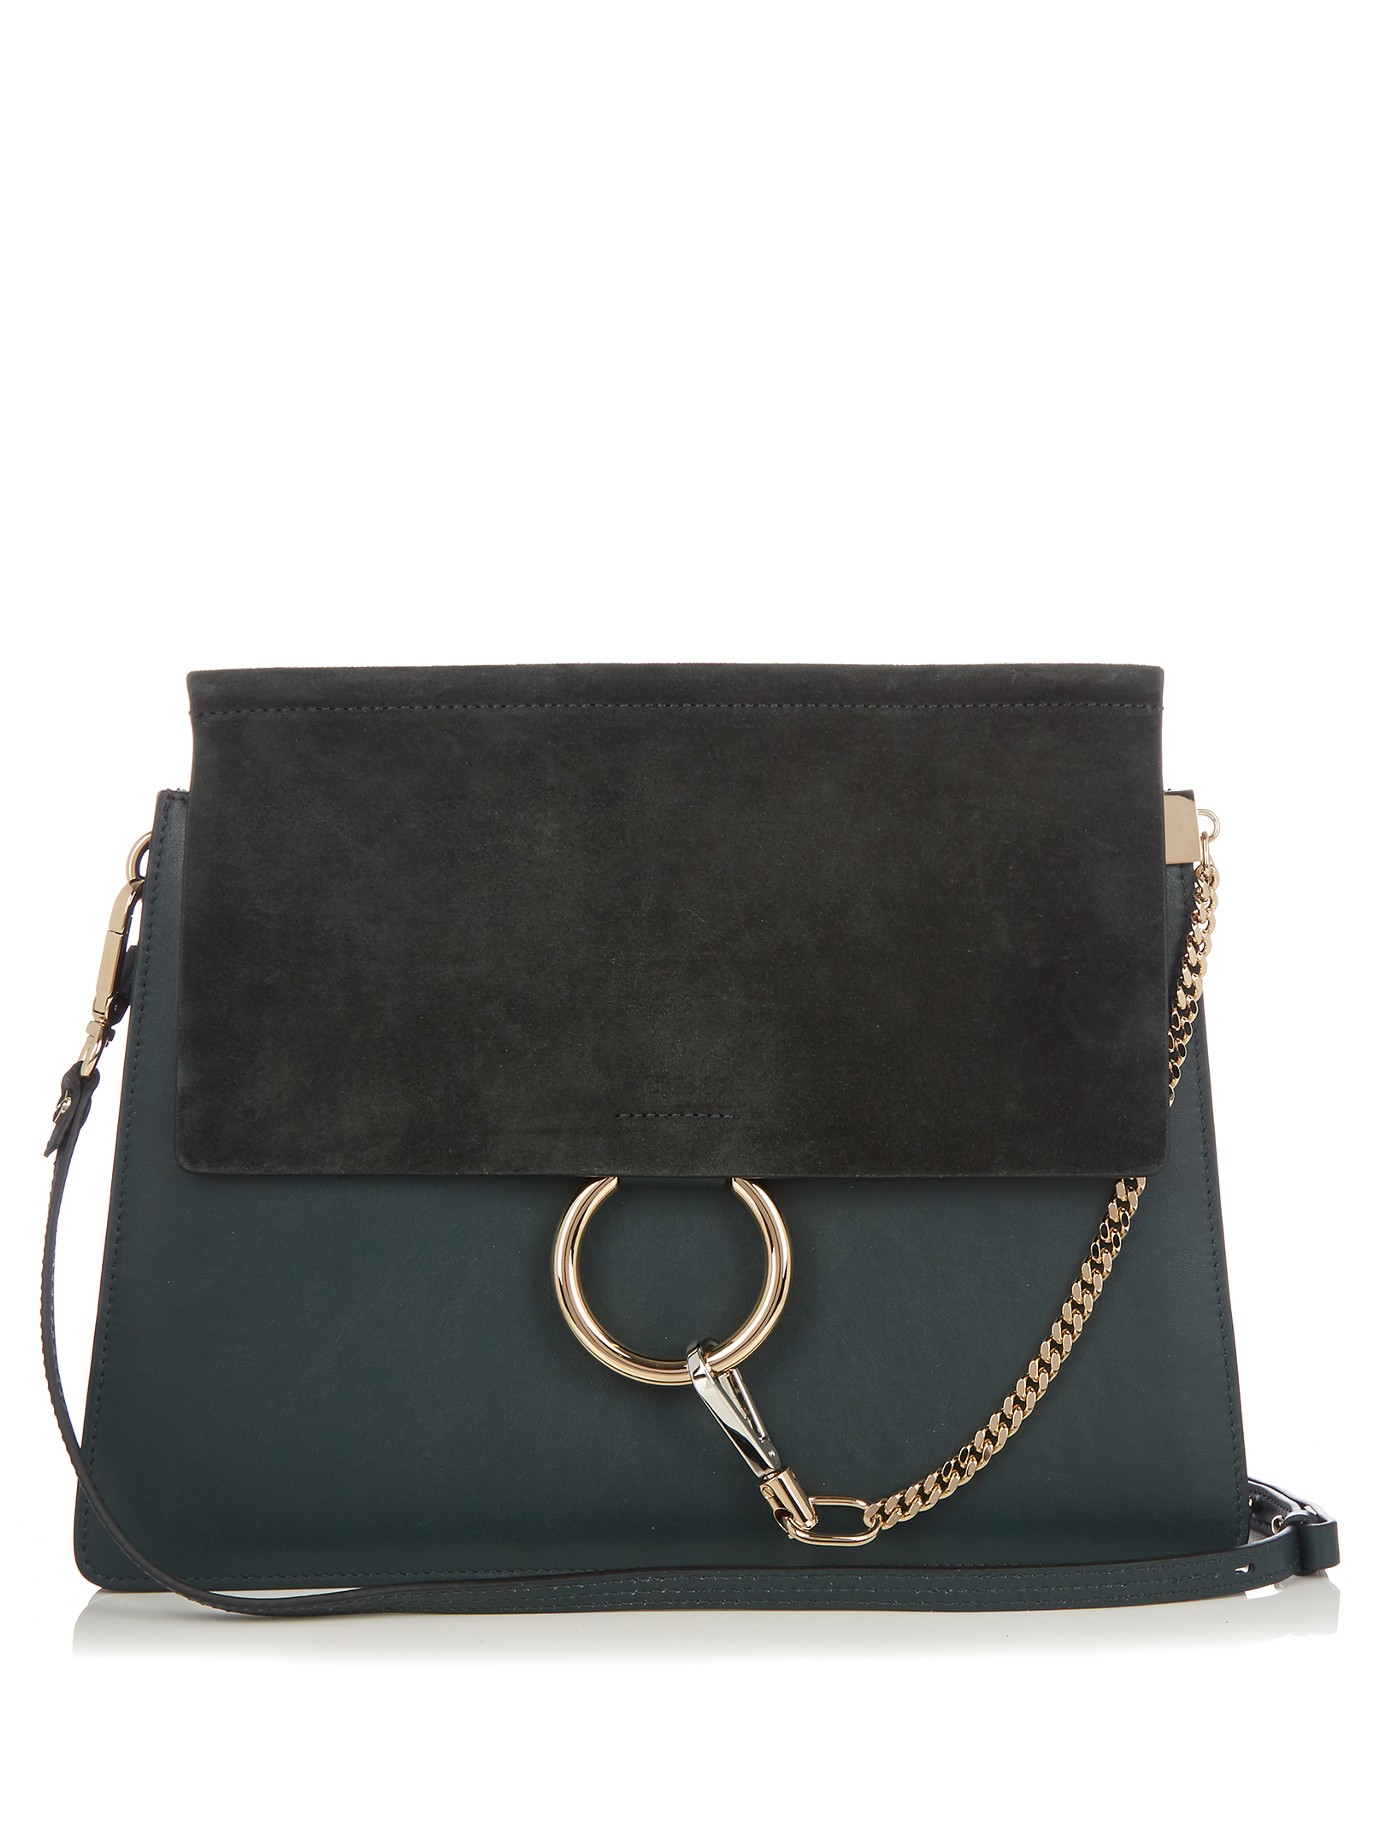 Chlo 233 Faye Medium Suede And Leather Shoulder Bag In Green